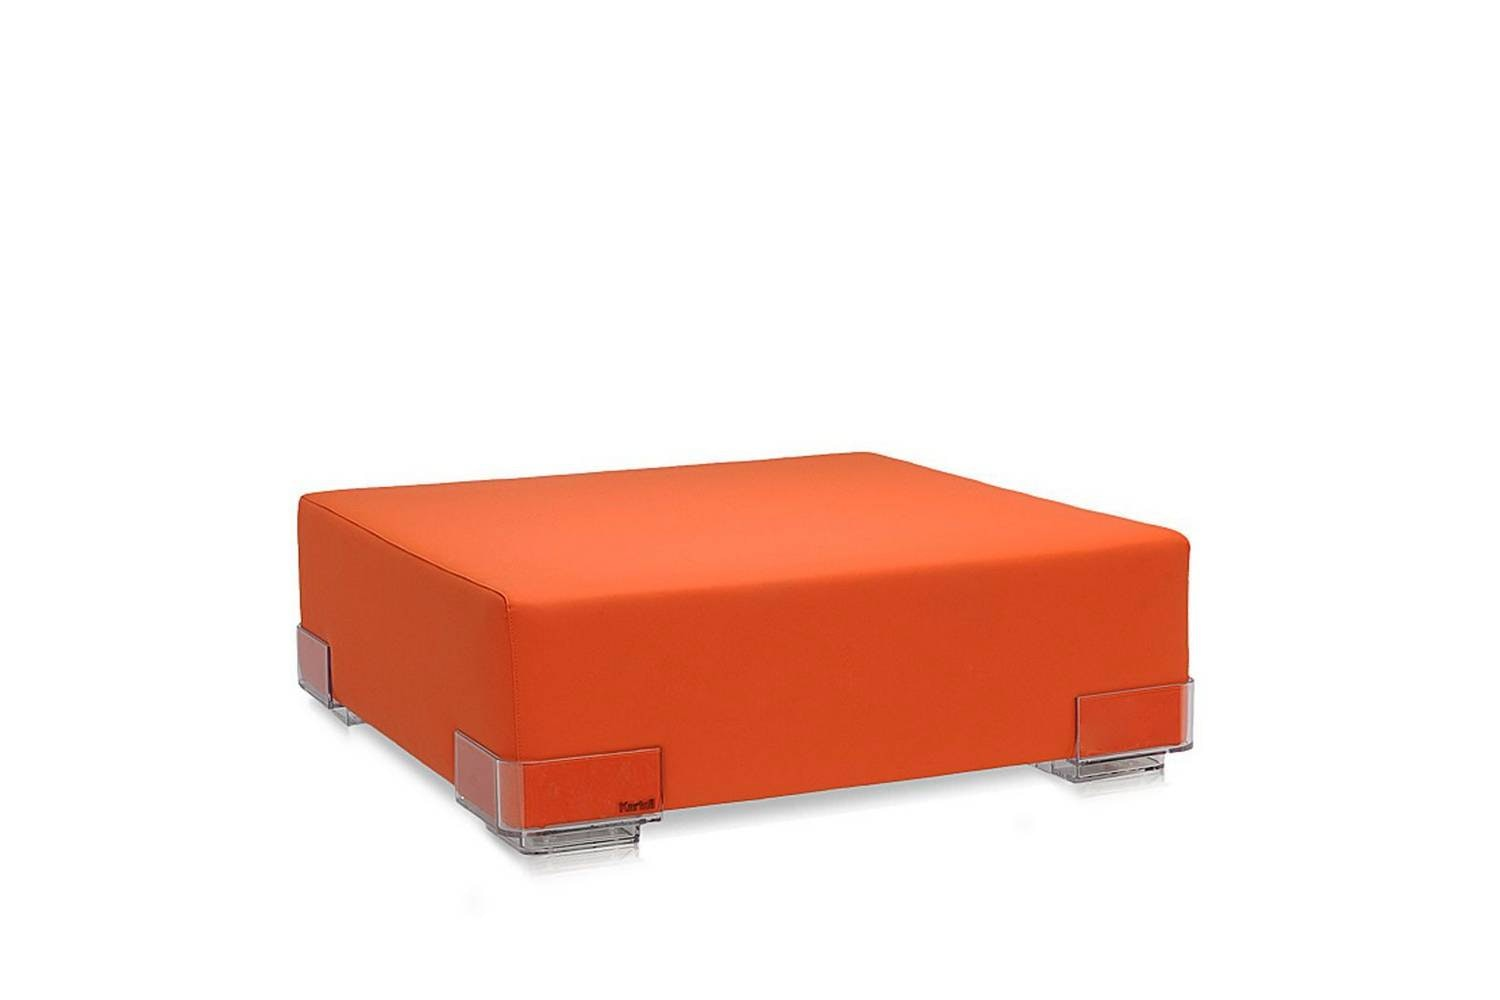 Plastics Ottoman by Piero Lissoni for Kartell